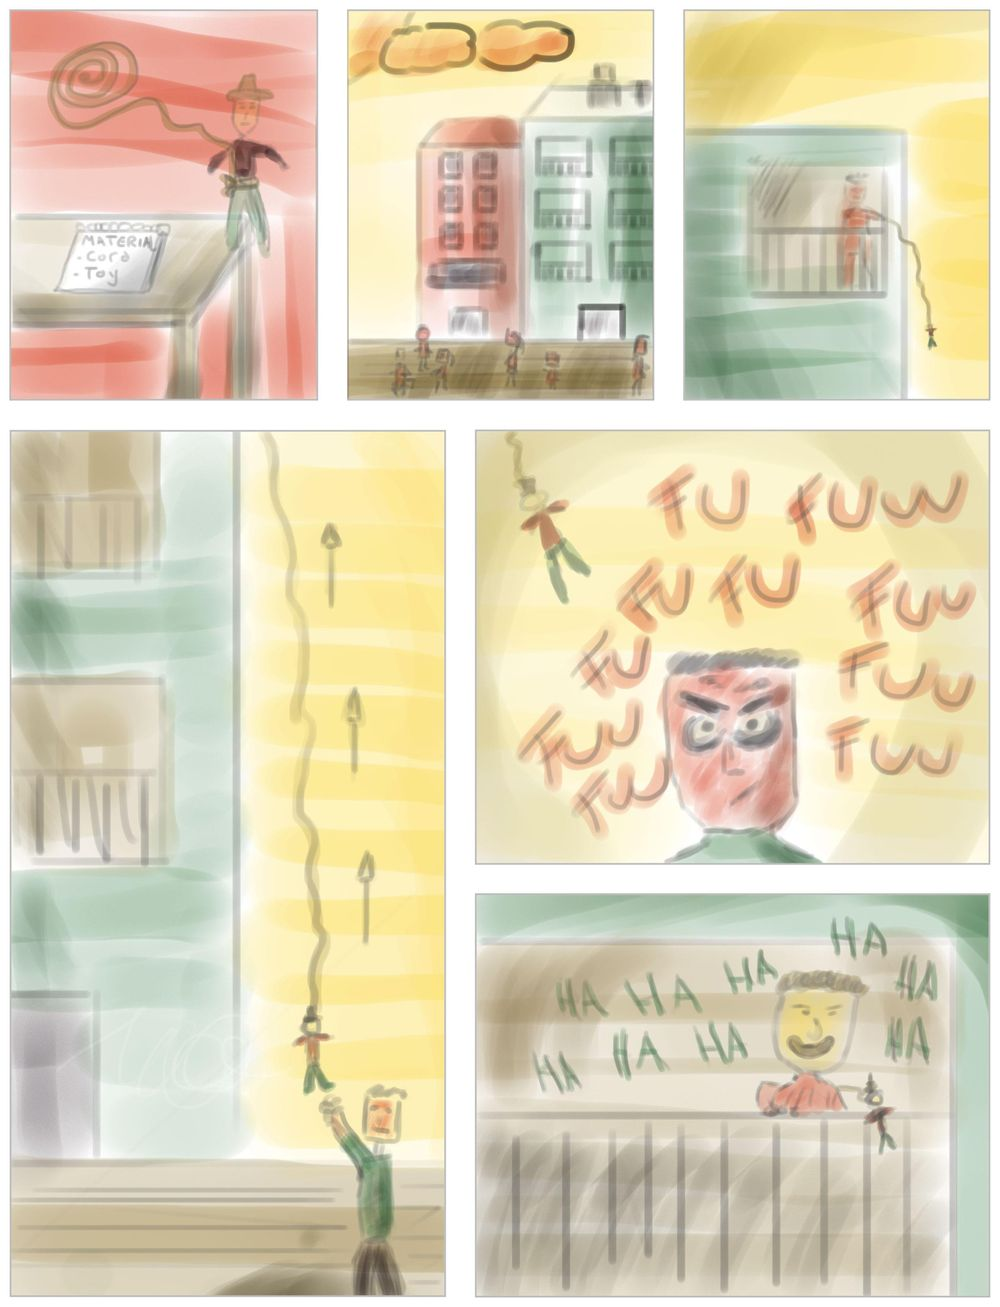 Childhood memory + Digital painting - image 2 - student project